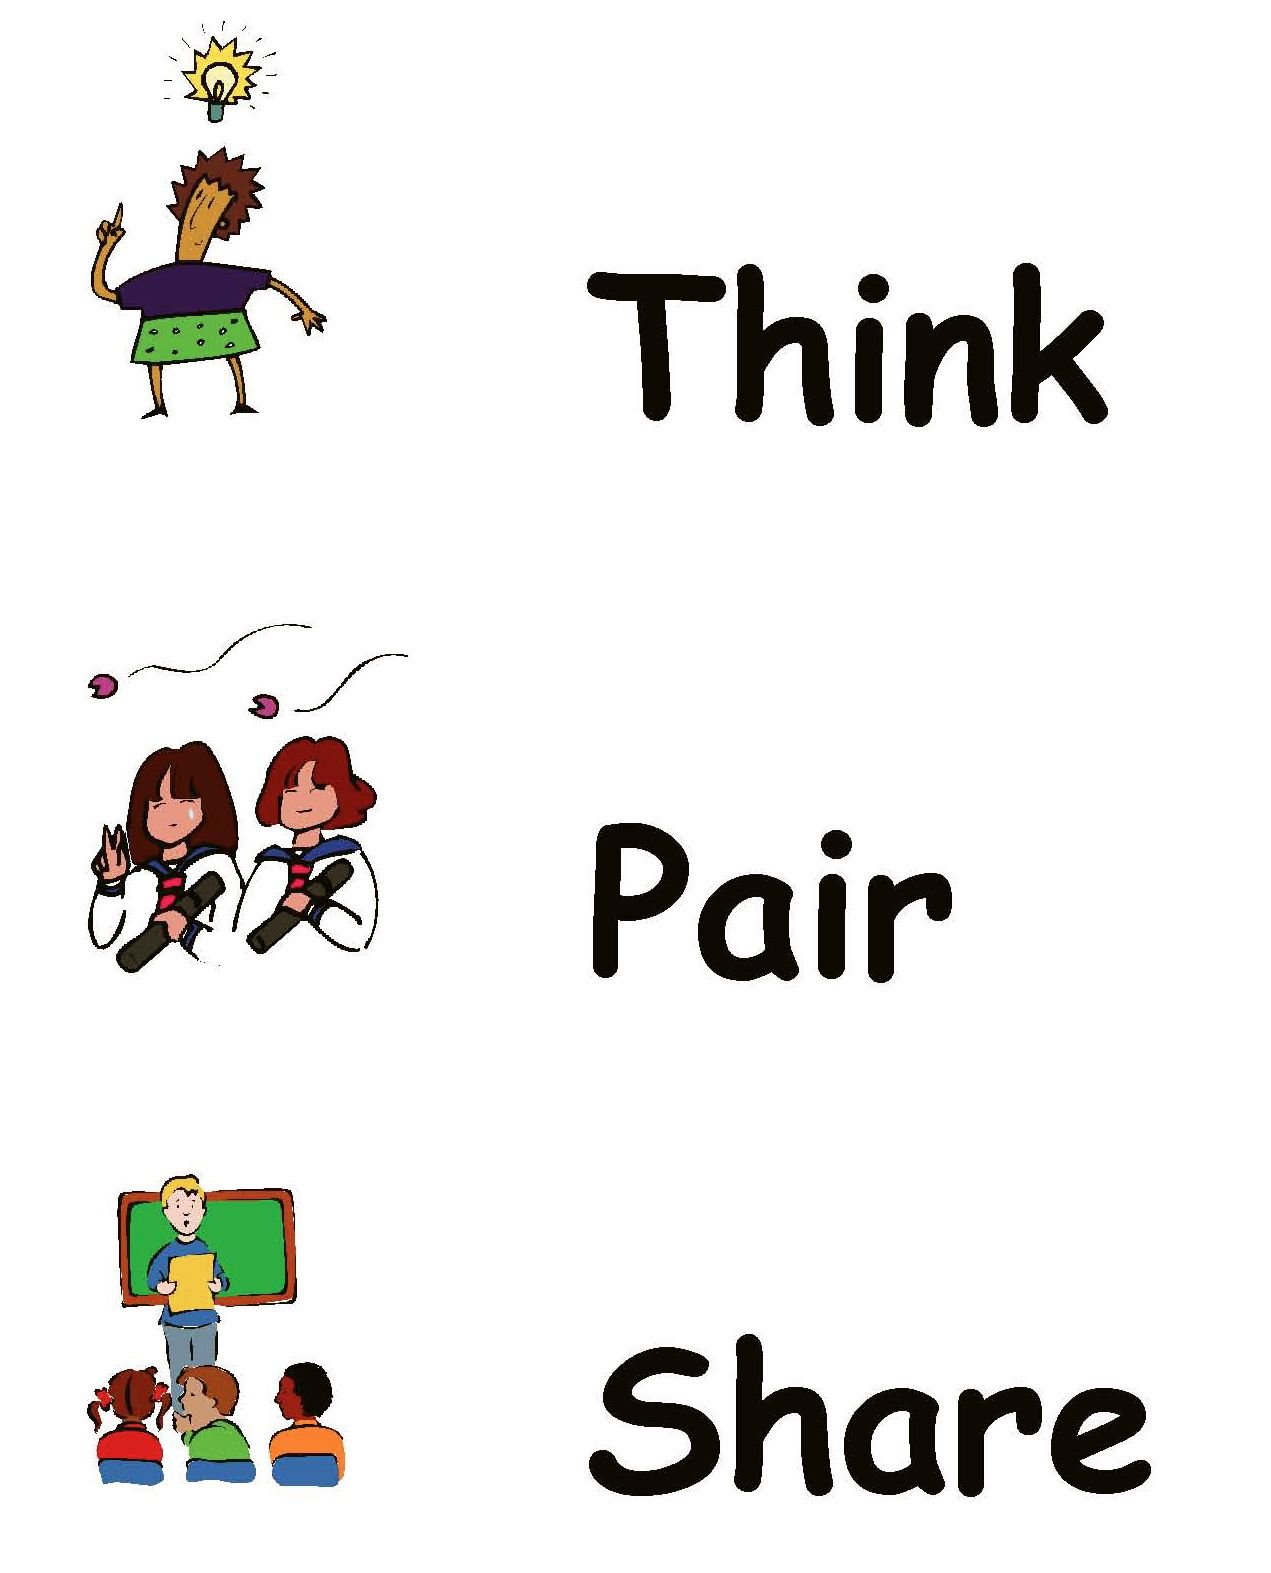 Worksheets Think Pair Share Worksheet think pair share variations making thinking visible pinterest learning is growing i particularly enjoyed the tech like tweet and w